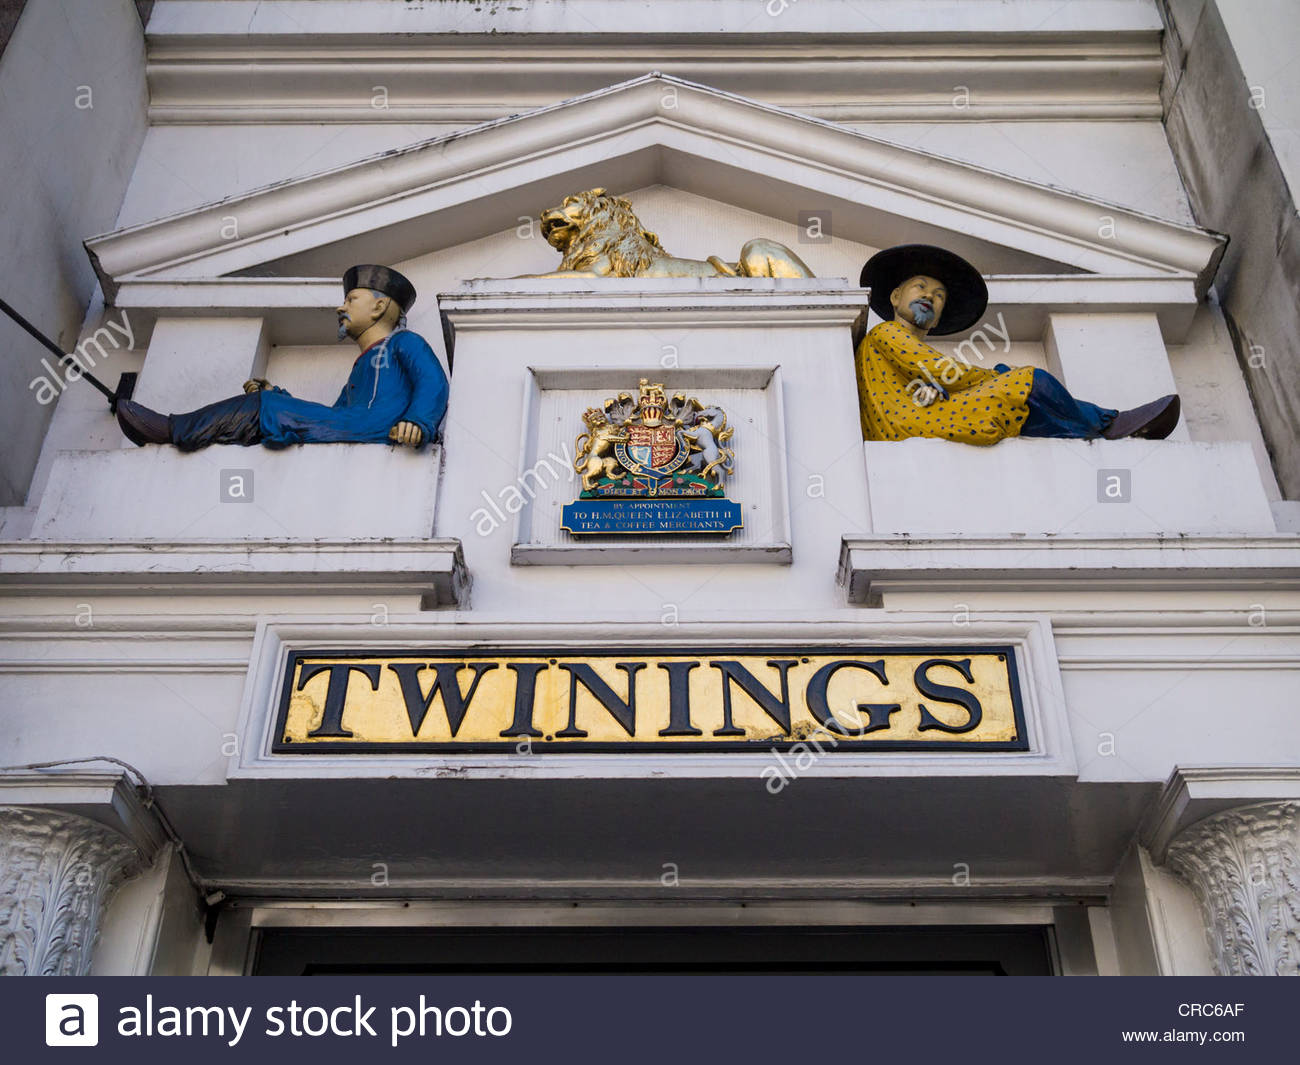 Front facade of 'The House of Twining', Fleet St, London, UK - Stock Image